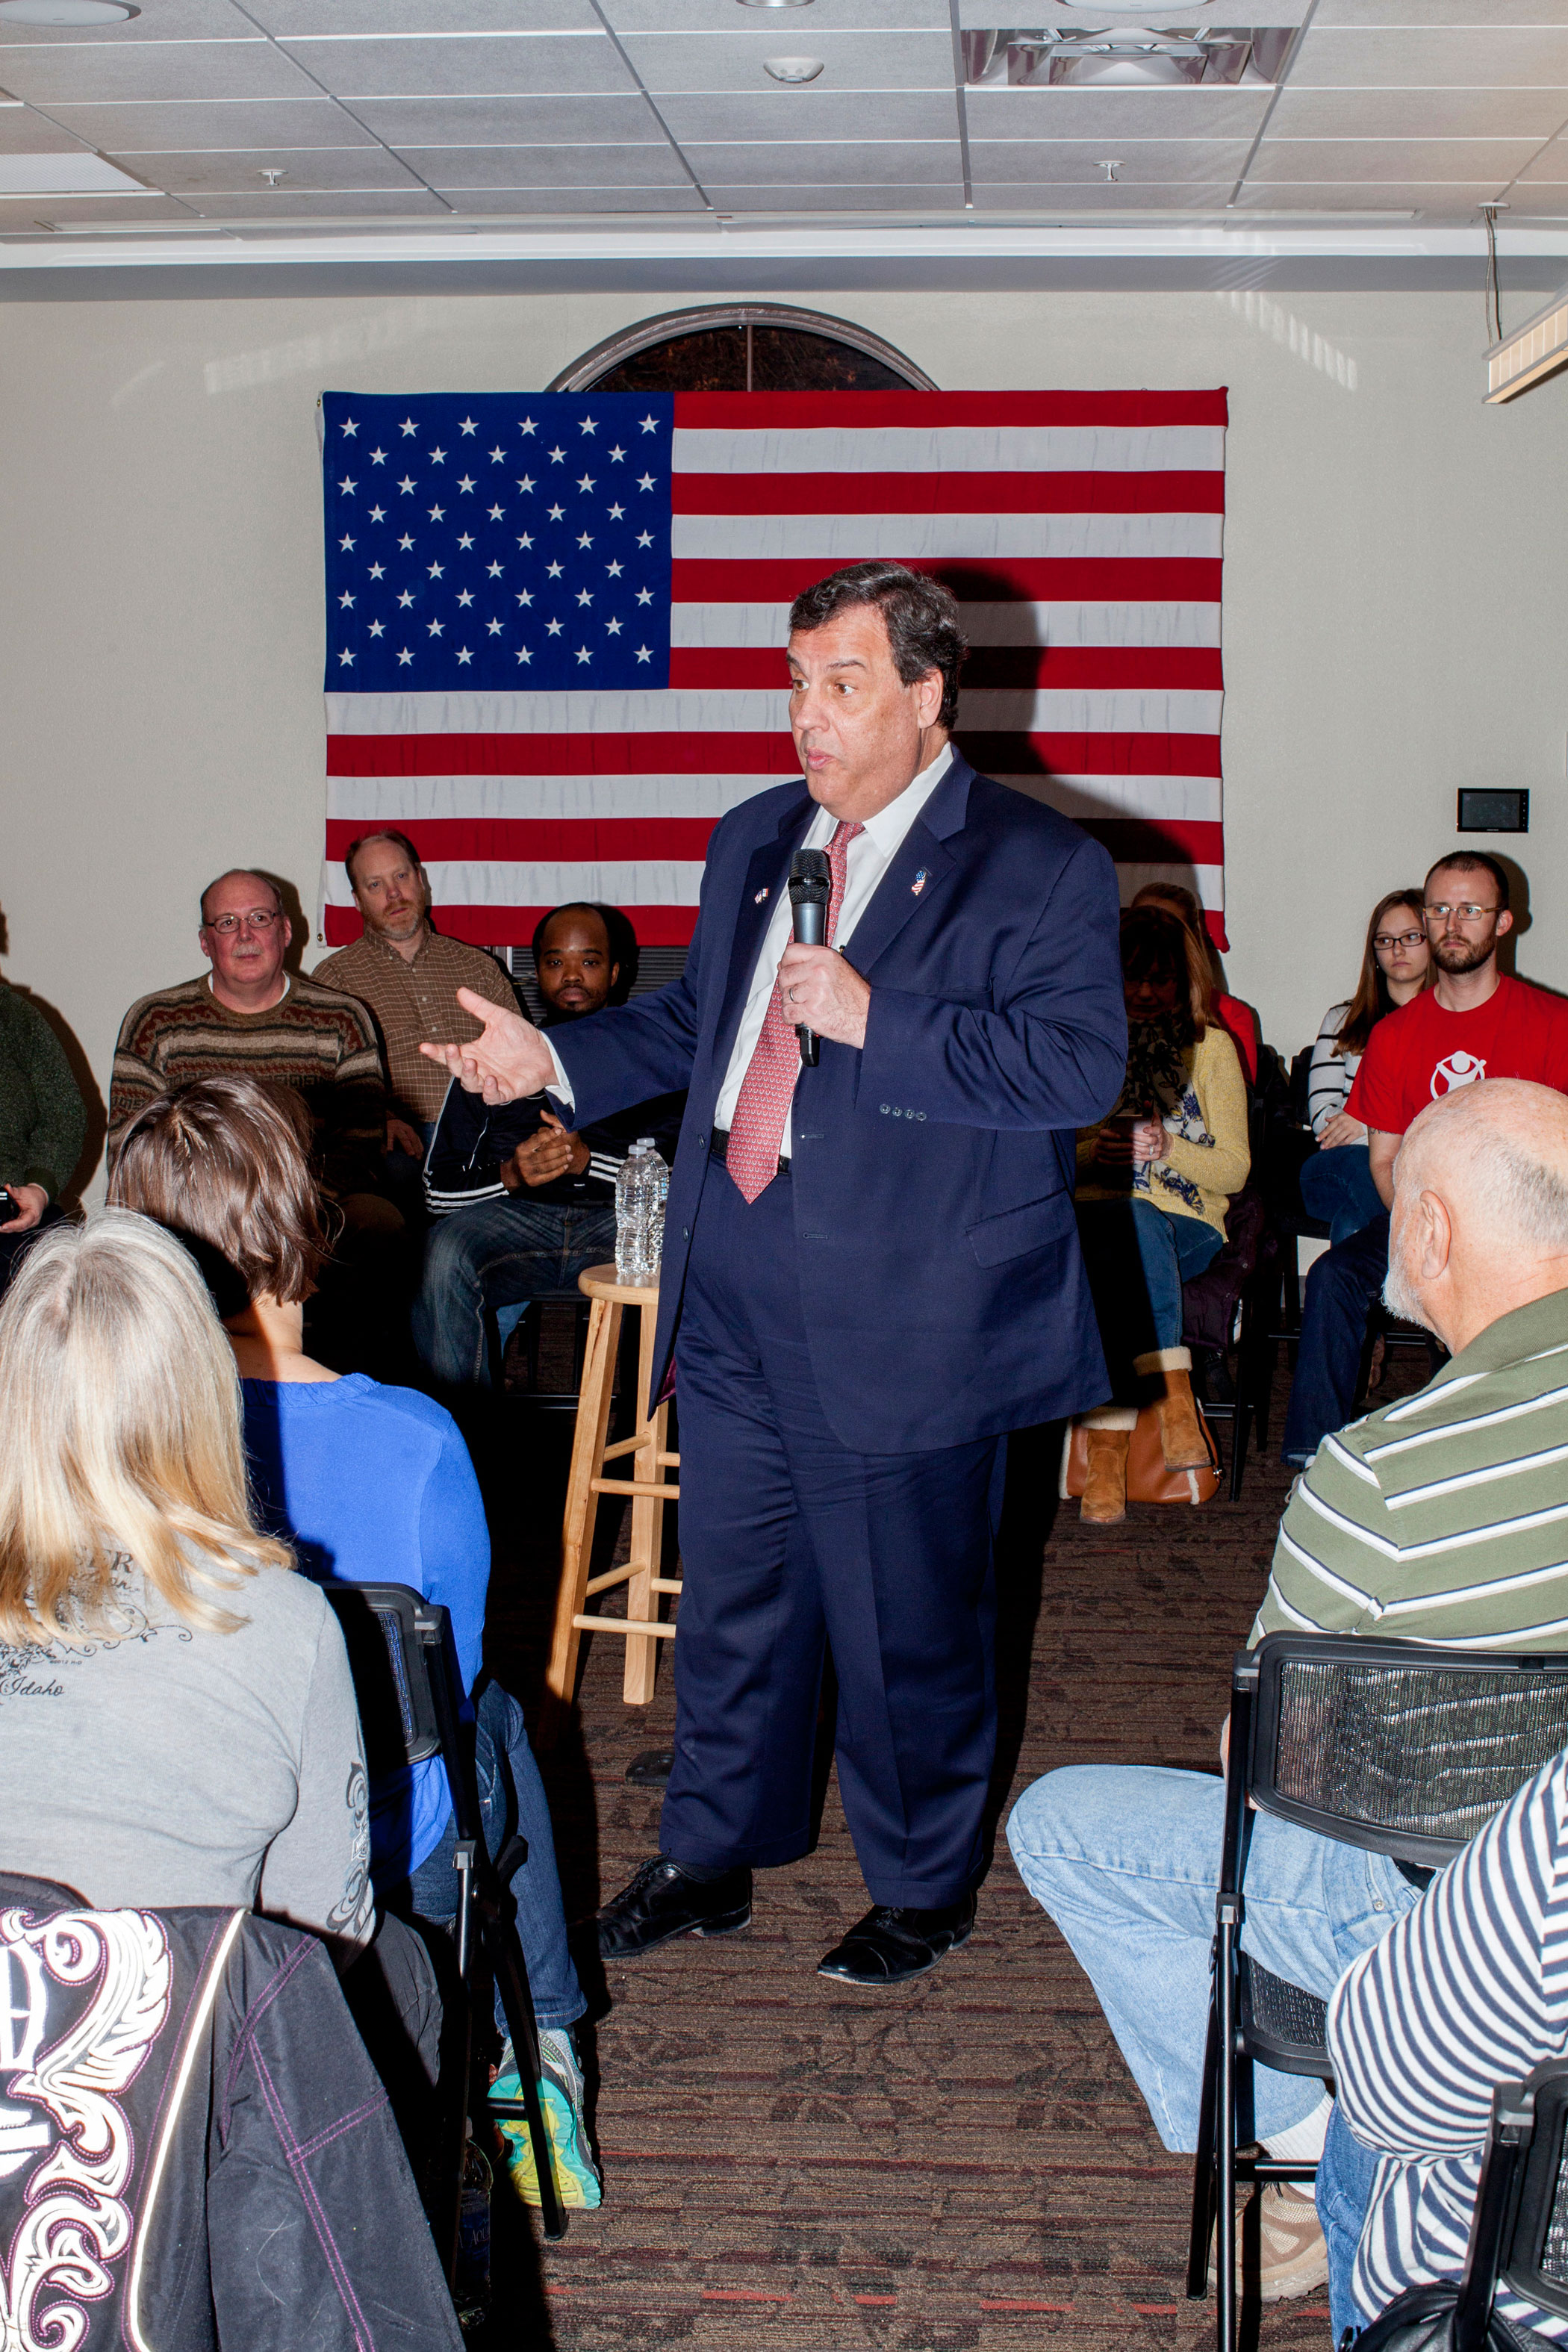 New Jersey Gov. Chris Christie speaks to supporters at a campaign town hall in Pella, Iowa, on Jan. 29.